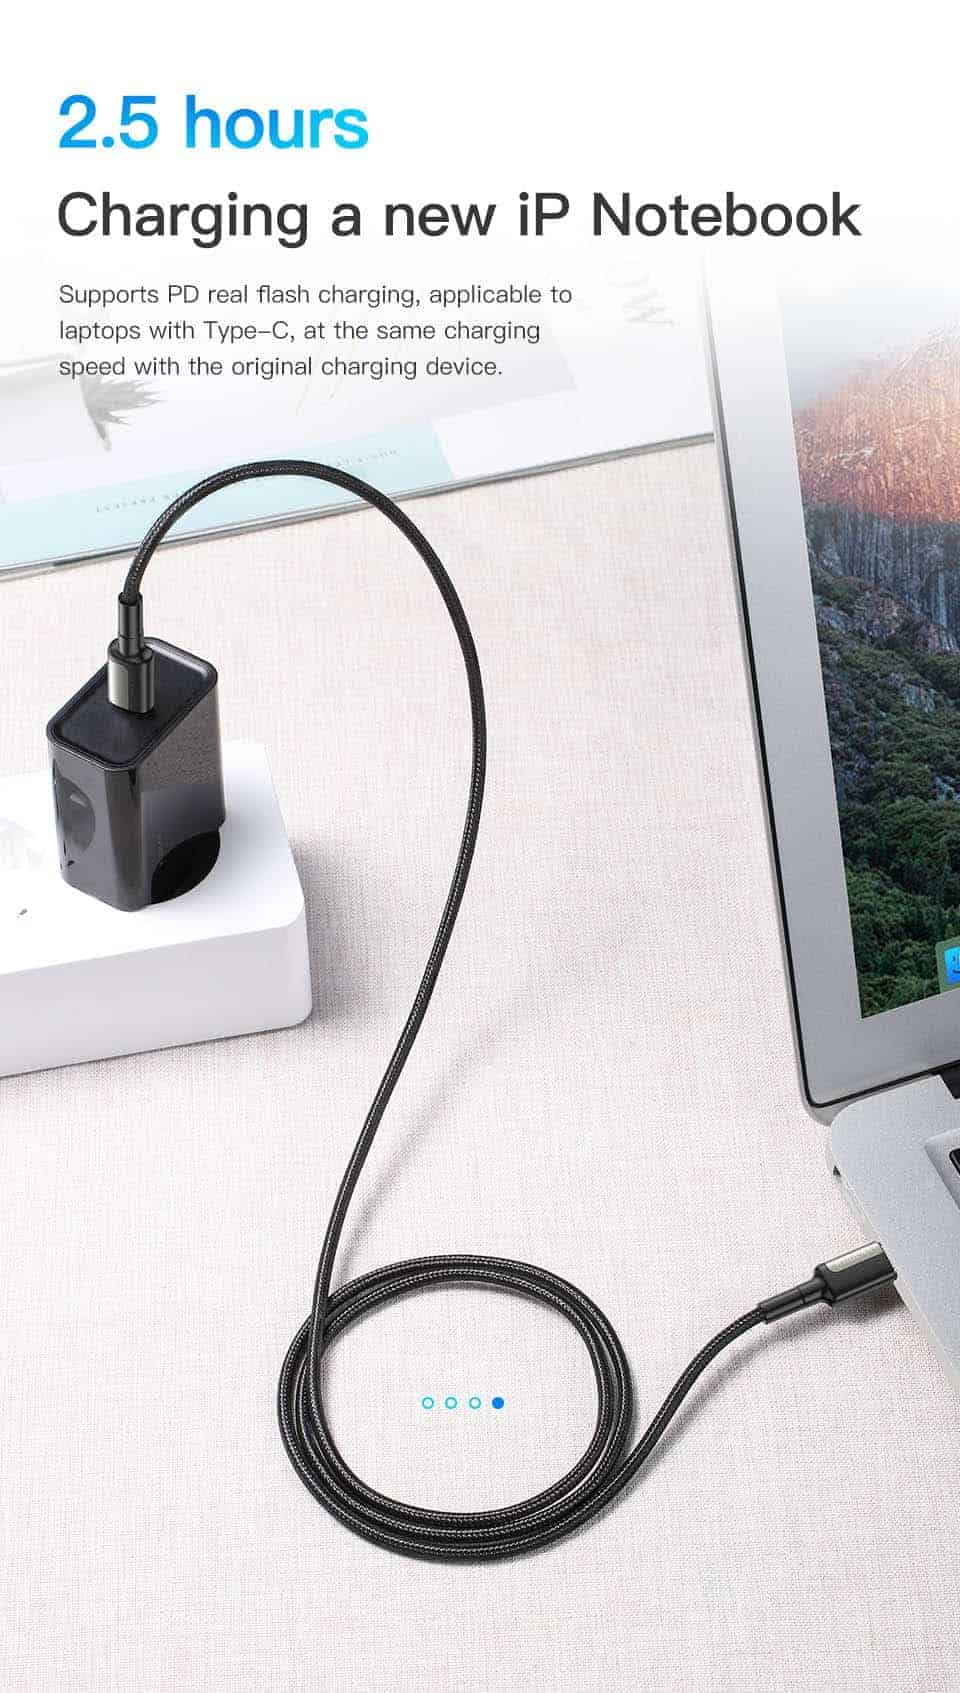 KUULAA USB Type C to USB Type C Cable 2.5 Hours Charging a new iP notebook